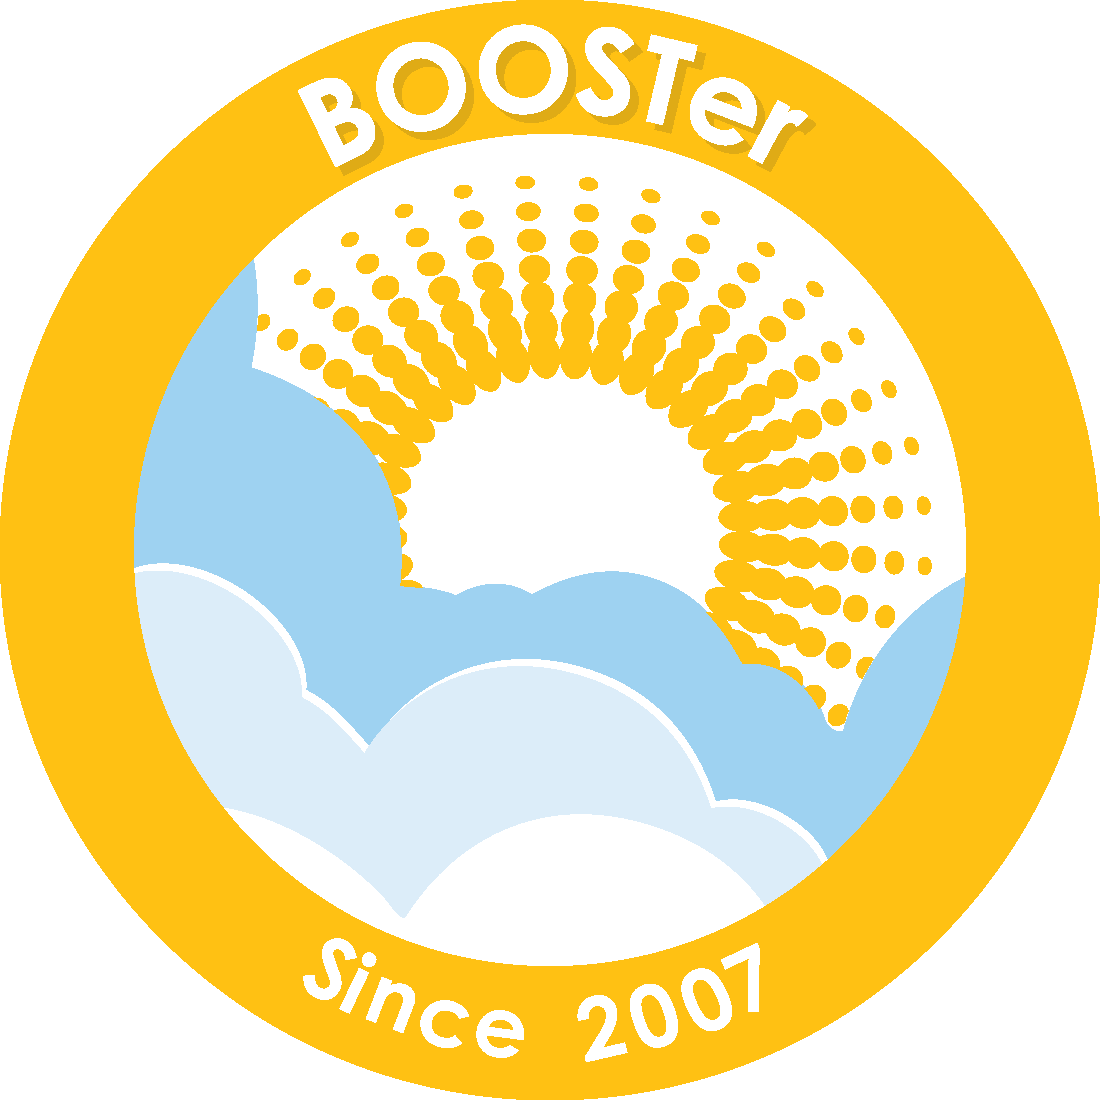 2007 BOOSTer Since badge